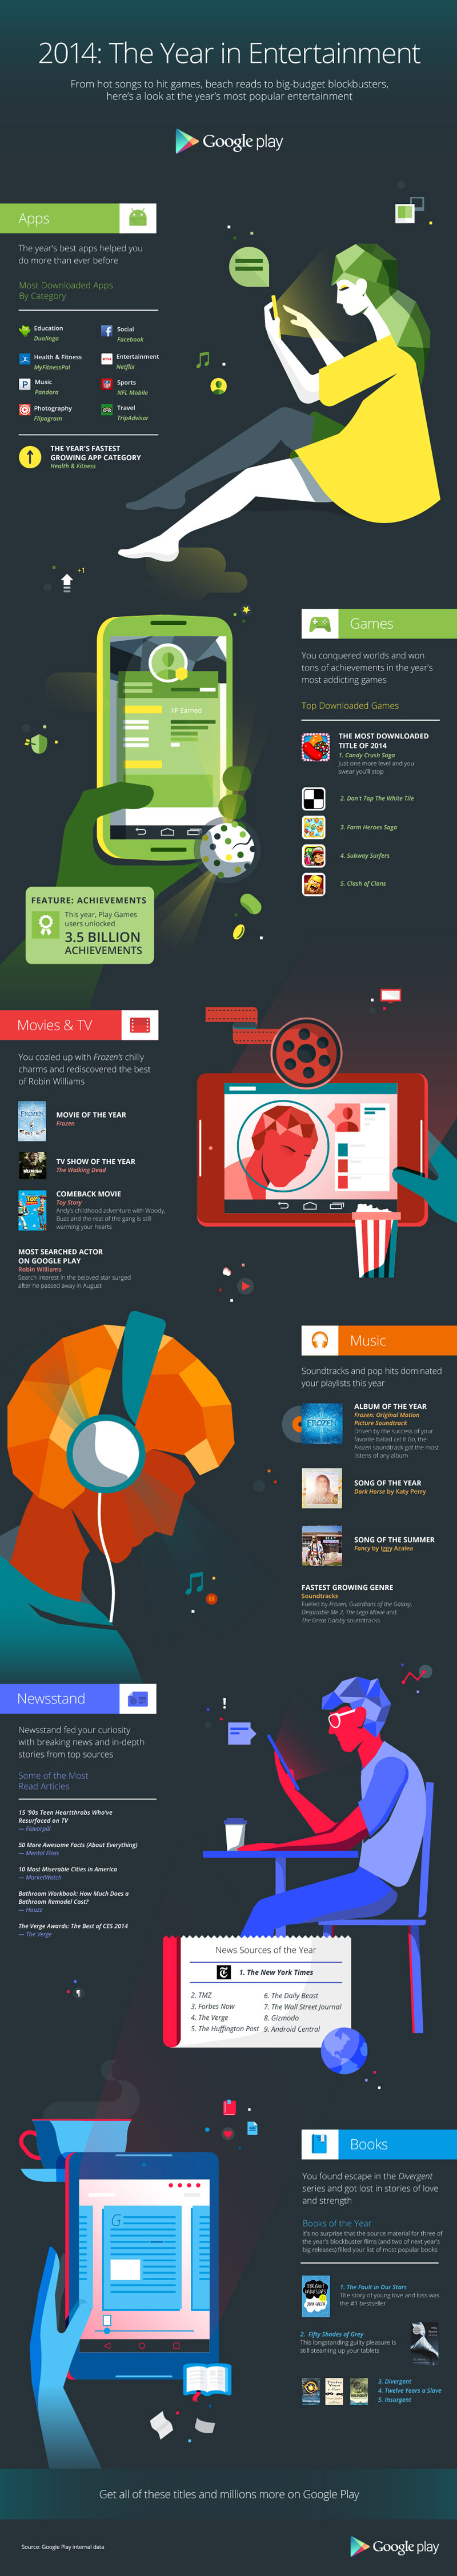 google_stats_2014_best_of_the_top_infographic